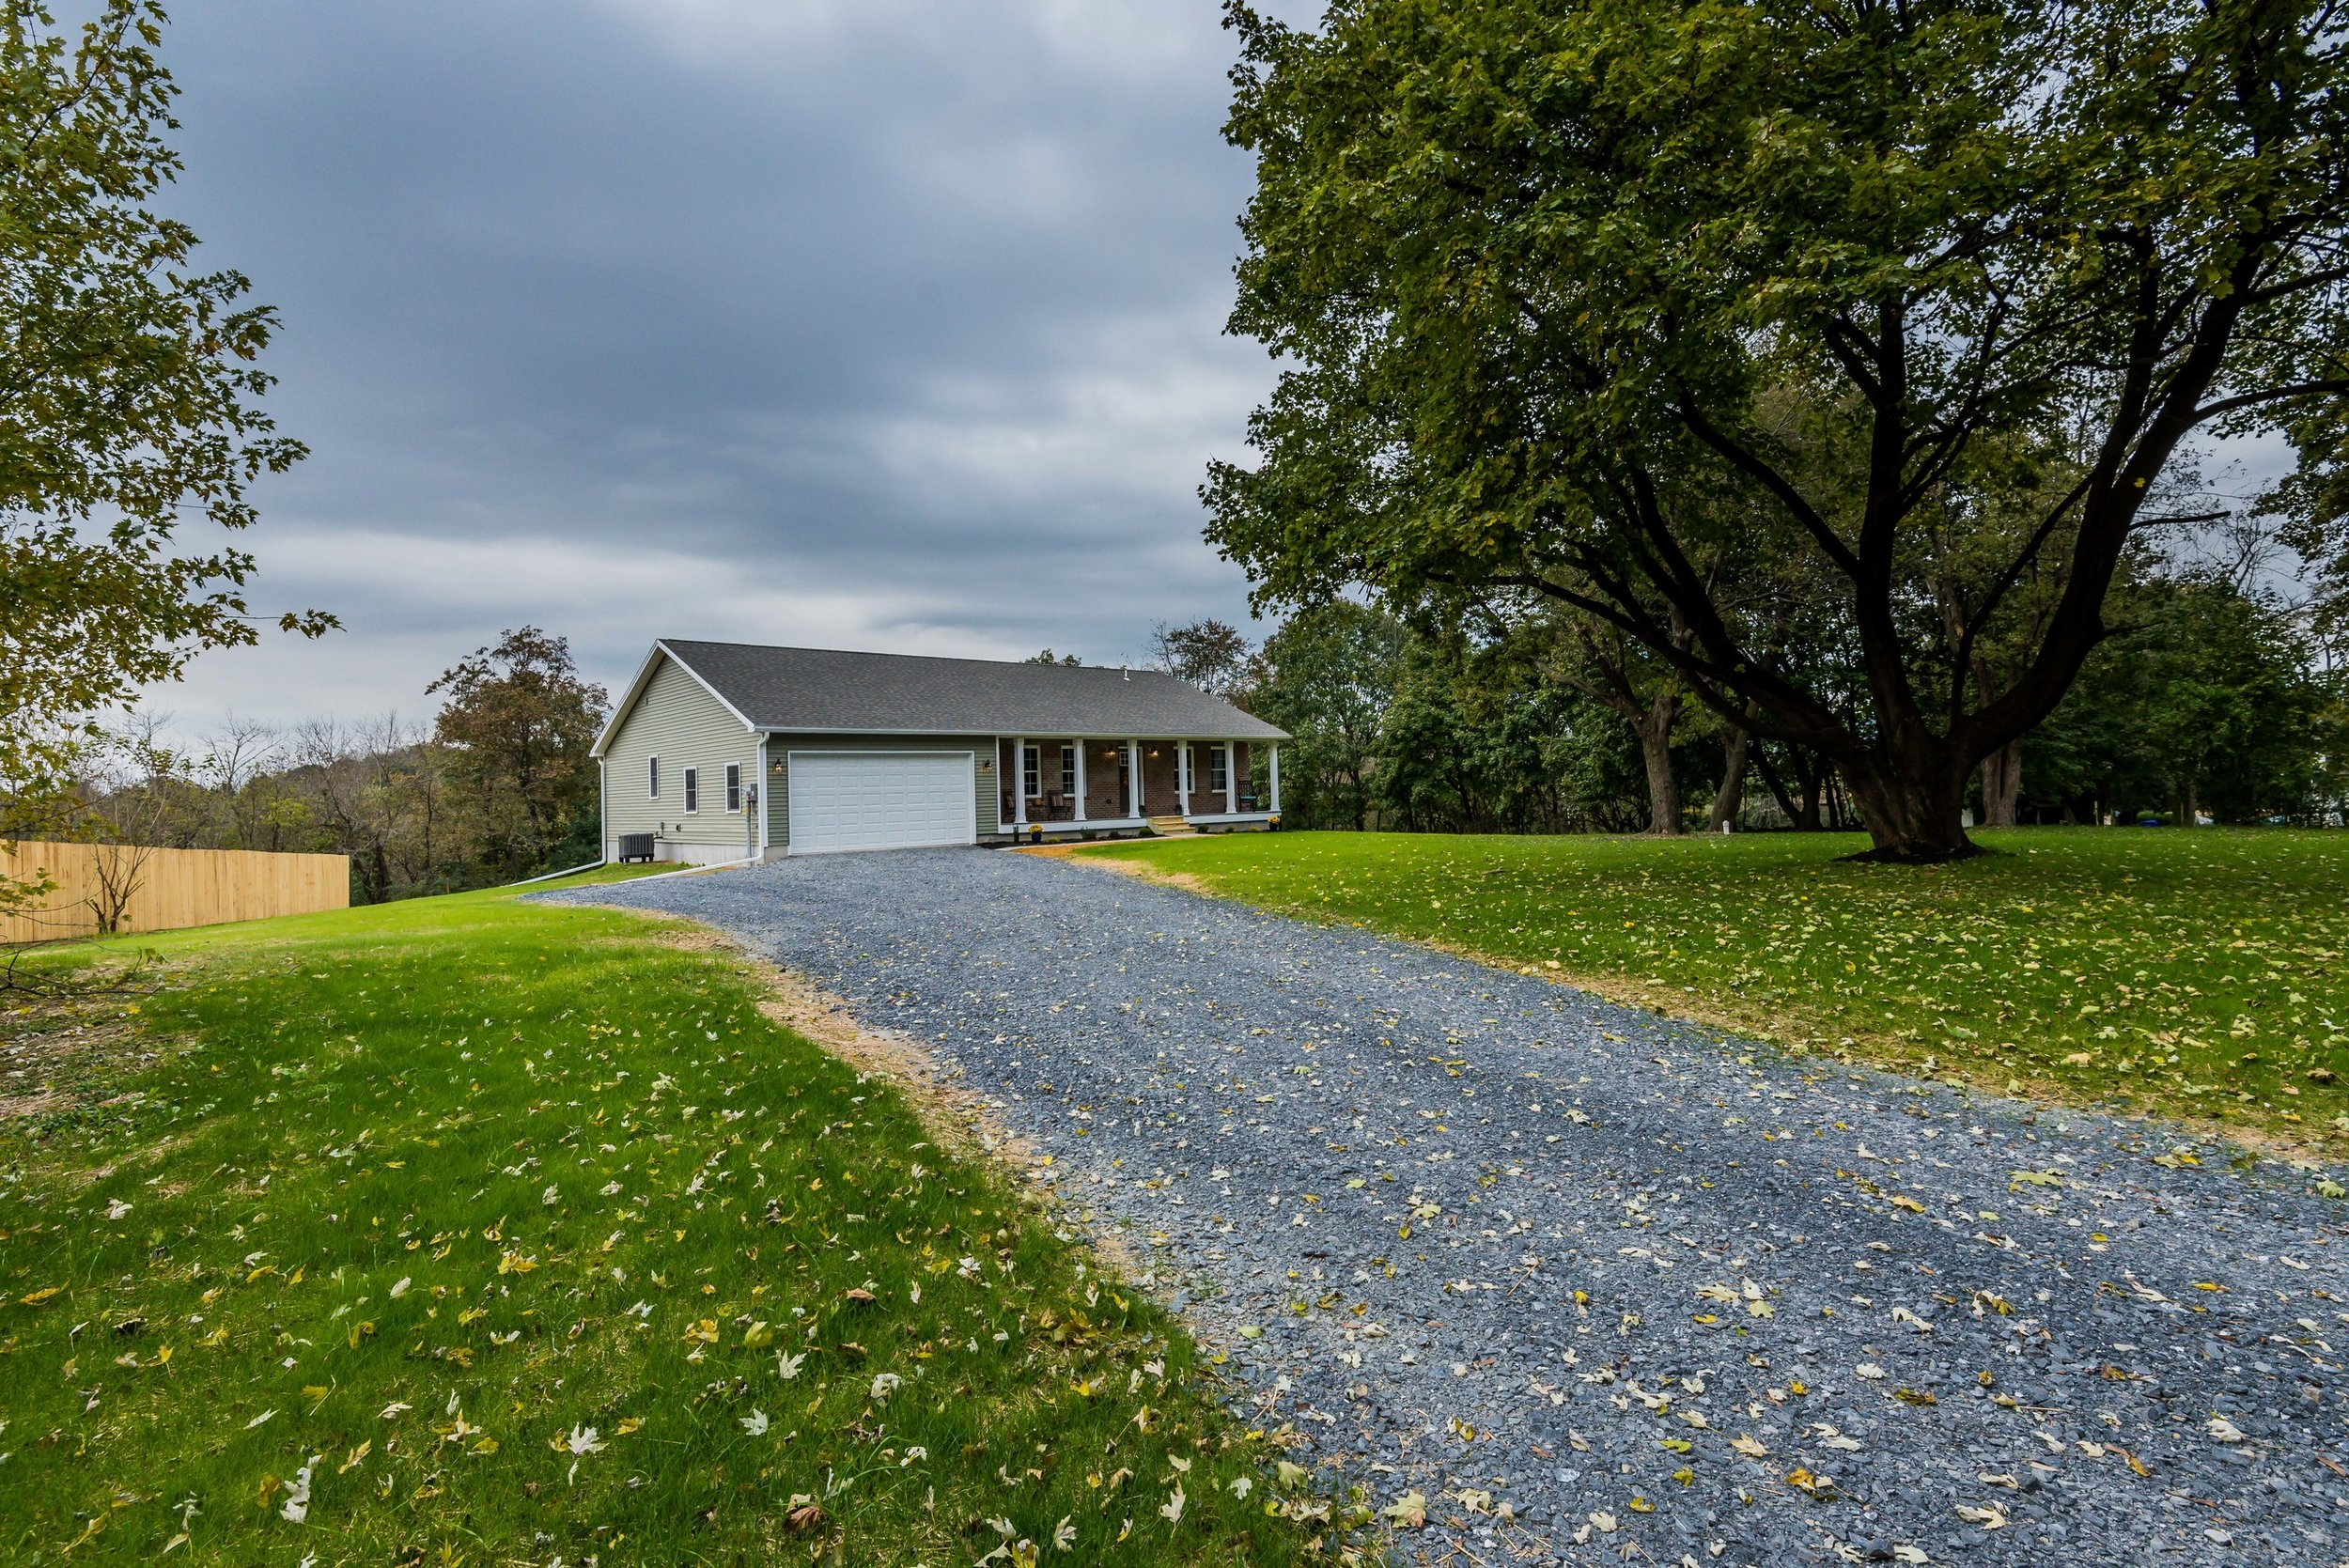 front_driveway_1_of_1_ - Copy.jpg